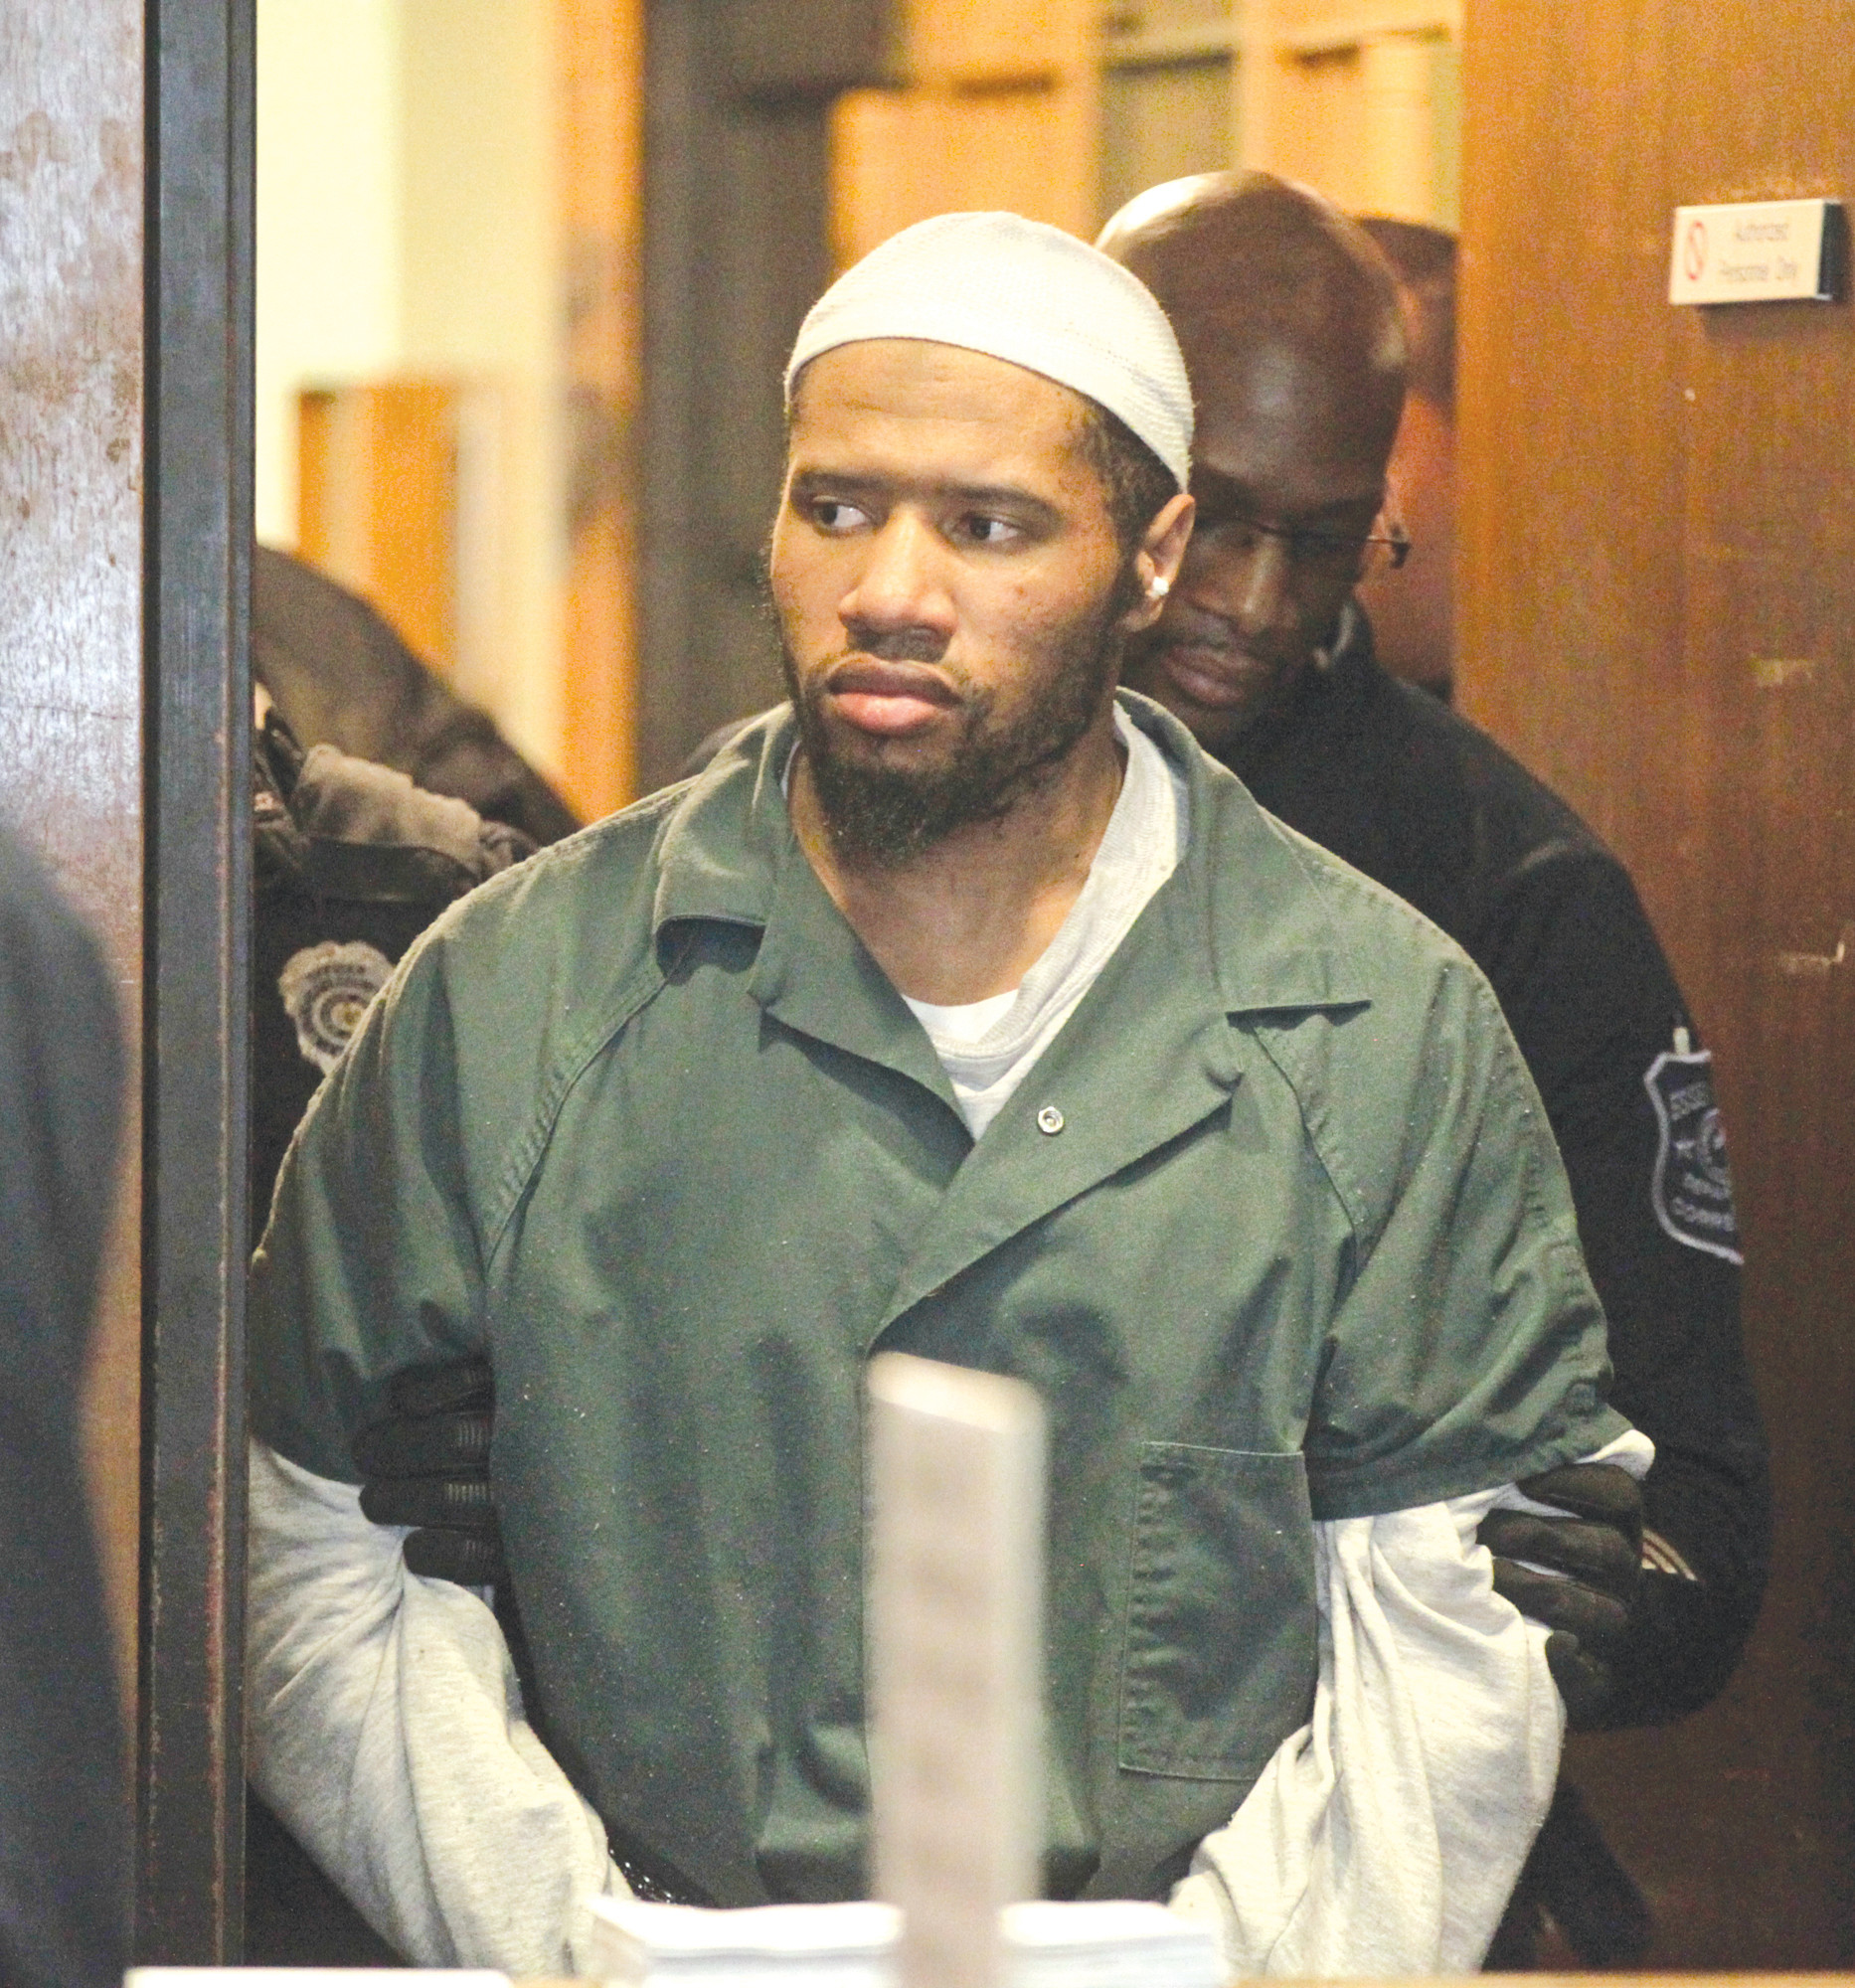 Brendan Tevlin killer's terrorism conviction the first in NJ